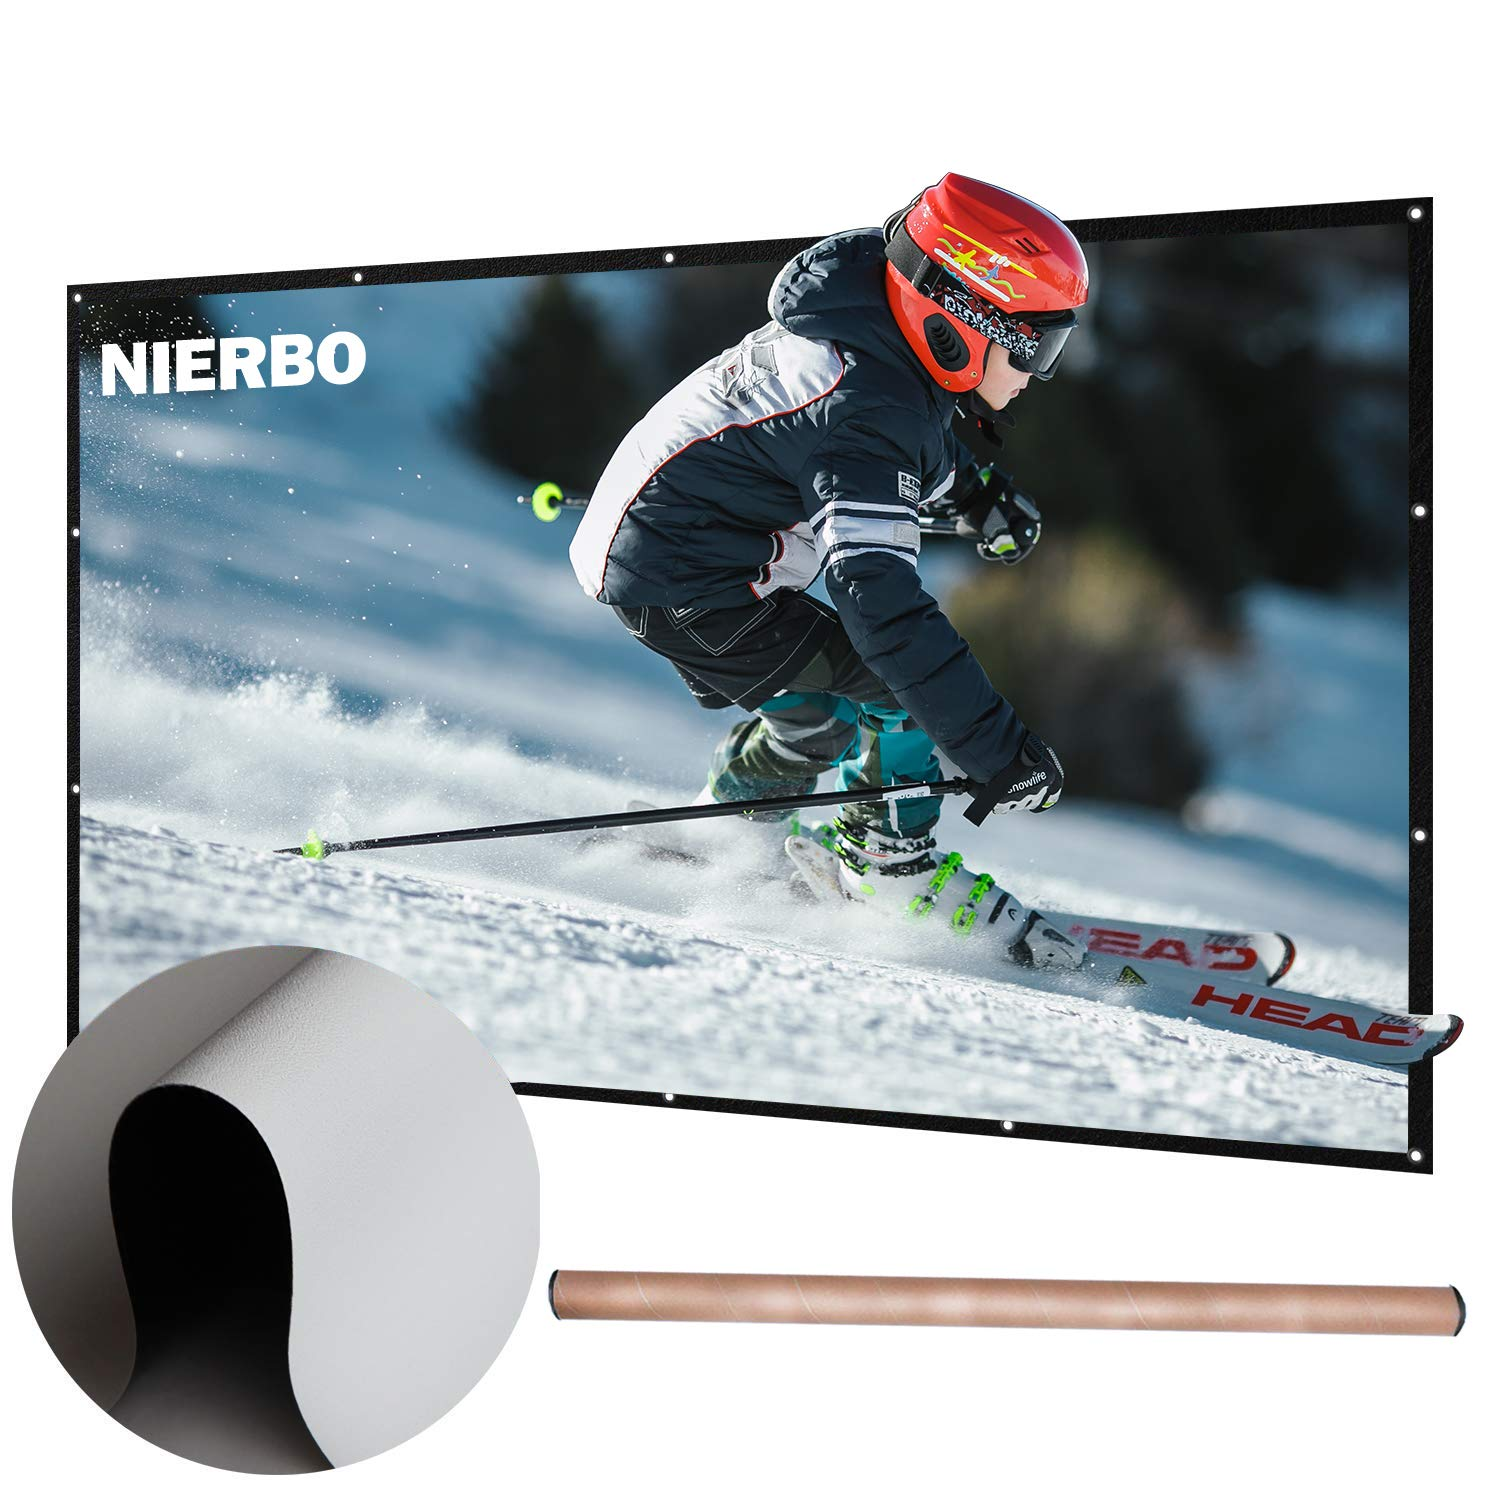 100 inch Projector Screen Rolled Up Portable Screen for Outdoor Indoor 4K Full HD Projection Screen Wrinkles Free NIERBO JS100C1